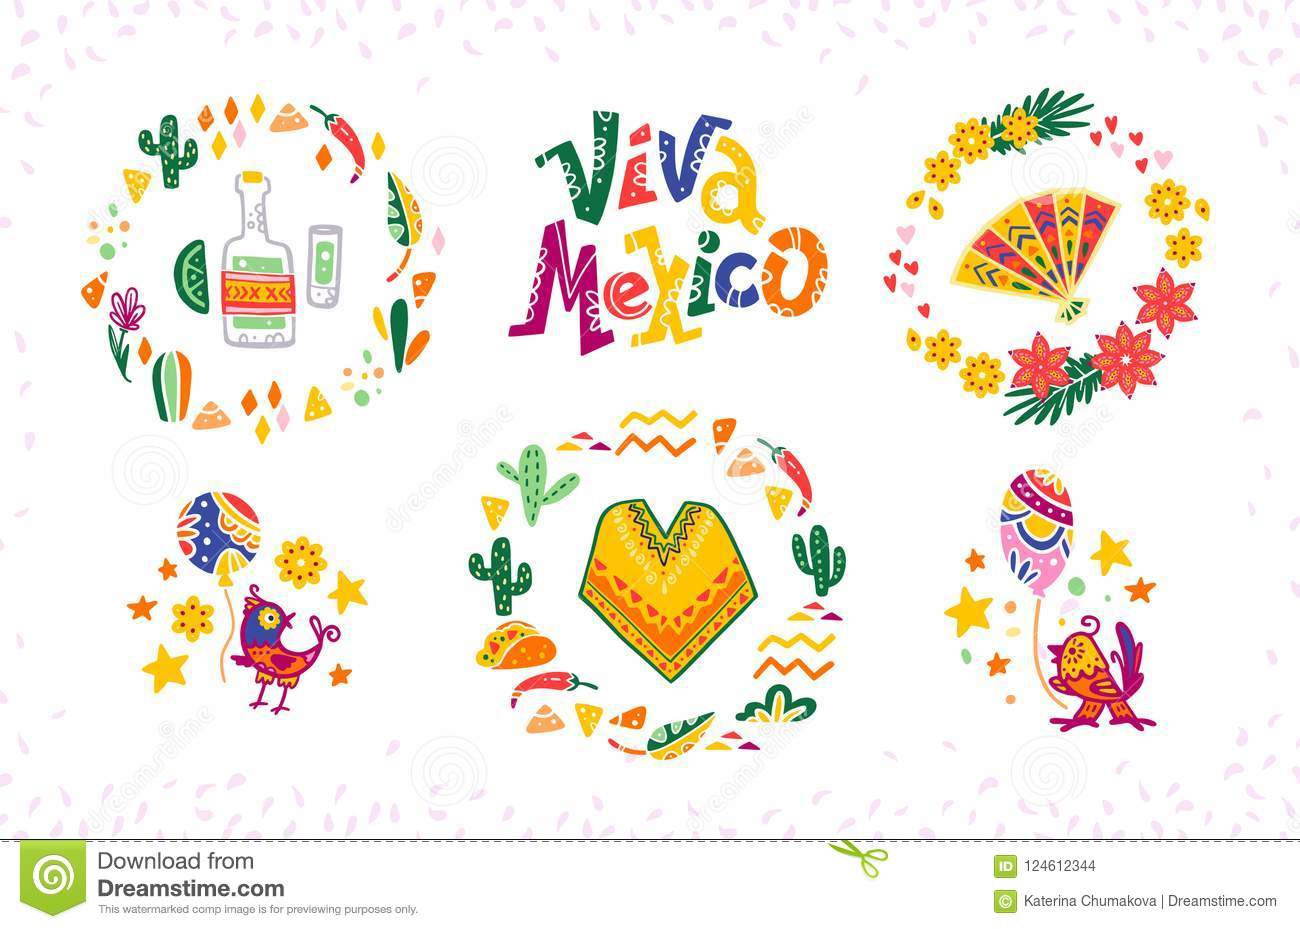 Vector set of hand drawn decorative arrangements with traditional Mexican symbols and elements - Mexico lettering, decor, tequila,